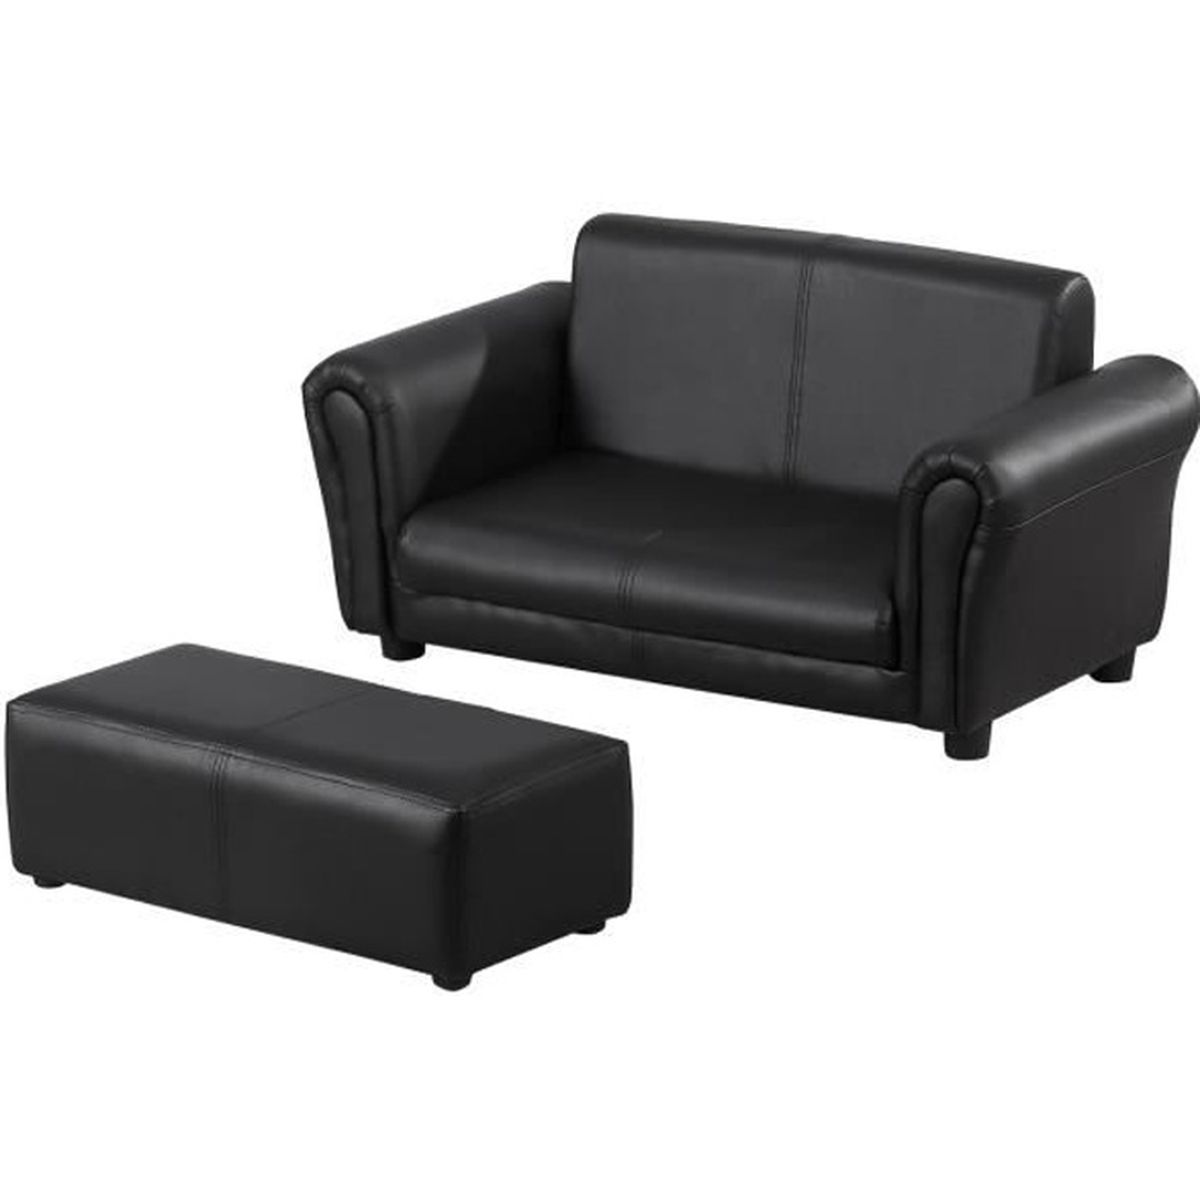 fauteuil et chaise pour enfant achat vente fauteuil et chaise pour enfant pas cher cdiscount. Black Bedroom Furniture Sets. Home Design Ideas